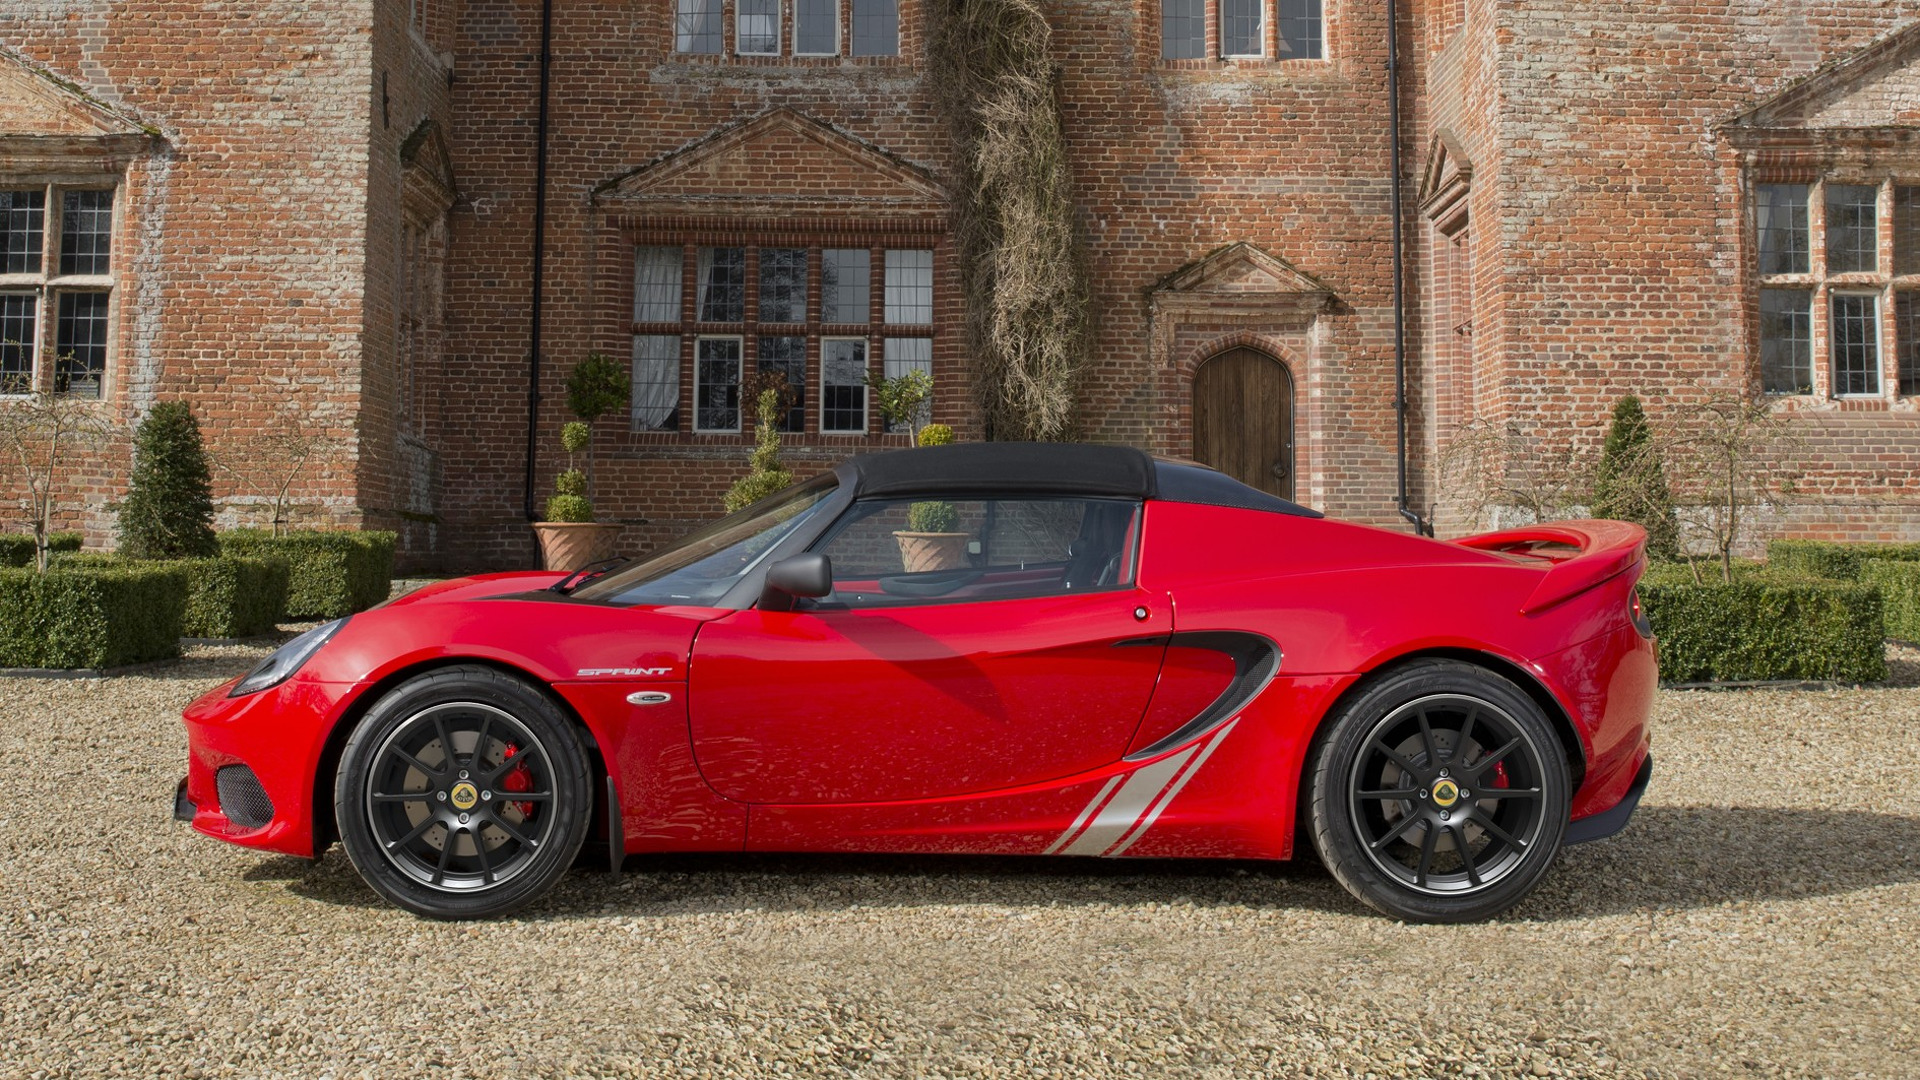 https://s1.cdn.autoevolution.com/images/news/2017-lotus-elise-sprint-proves-that-less-is-actually-more-116243_1.jpg